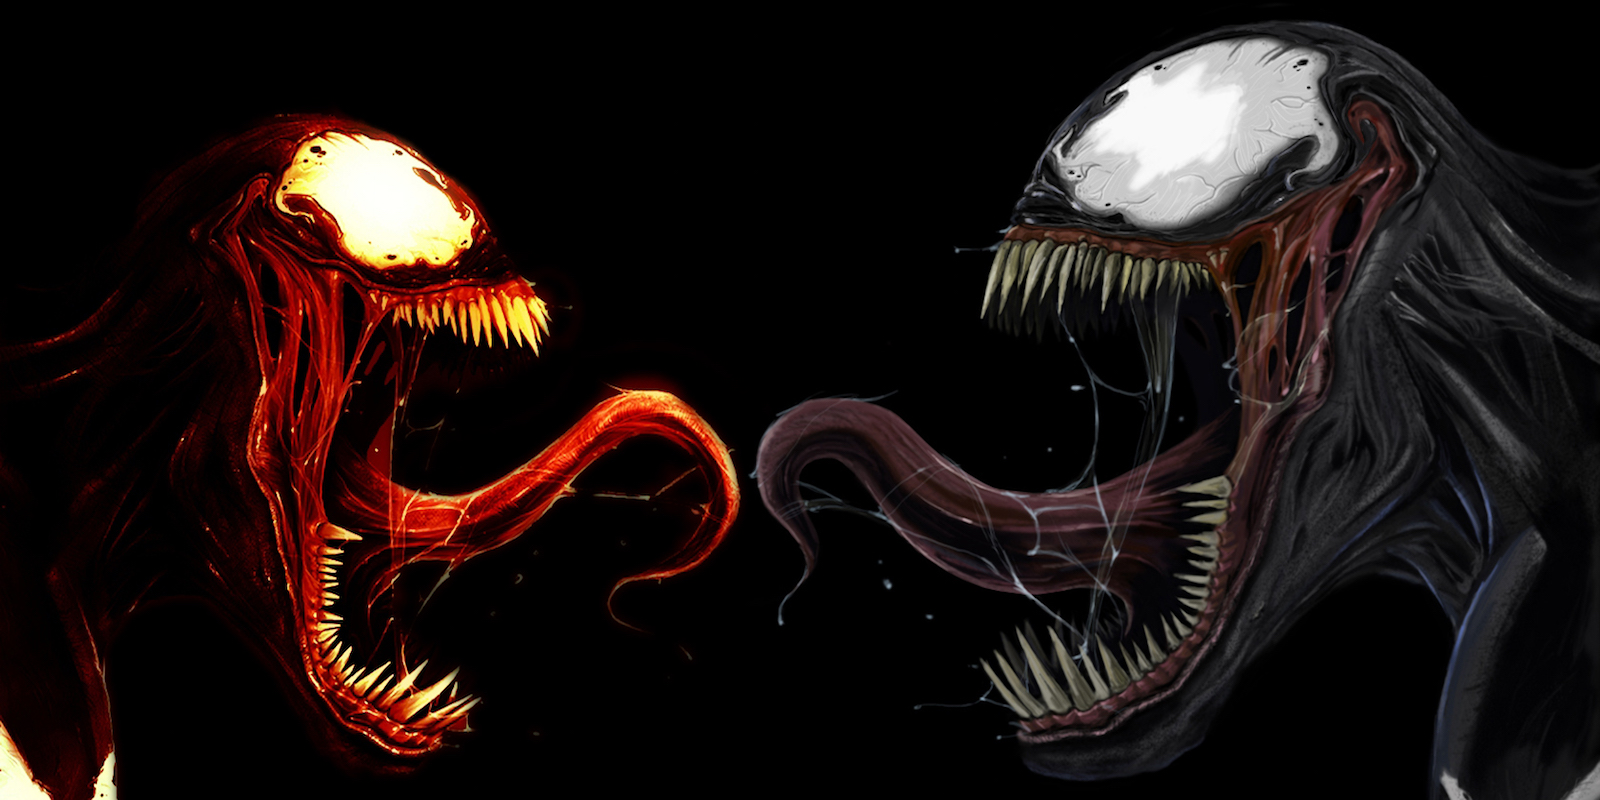 carnage and venom relationship questions